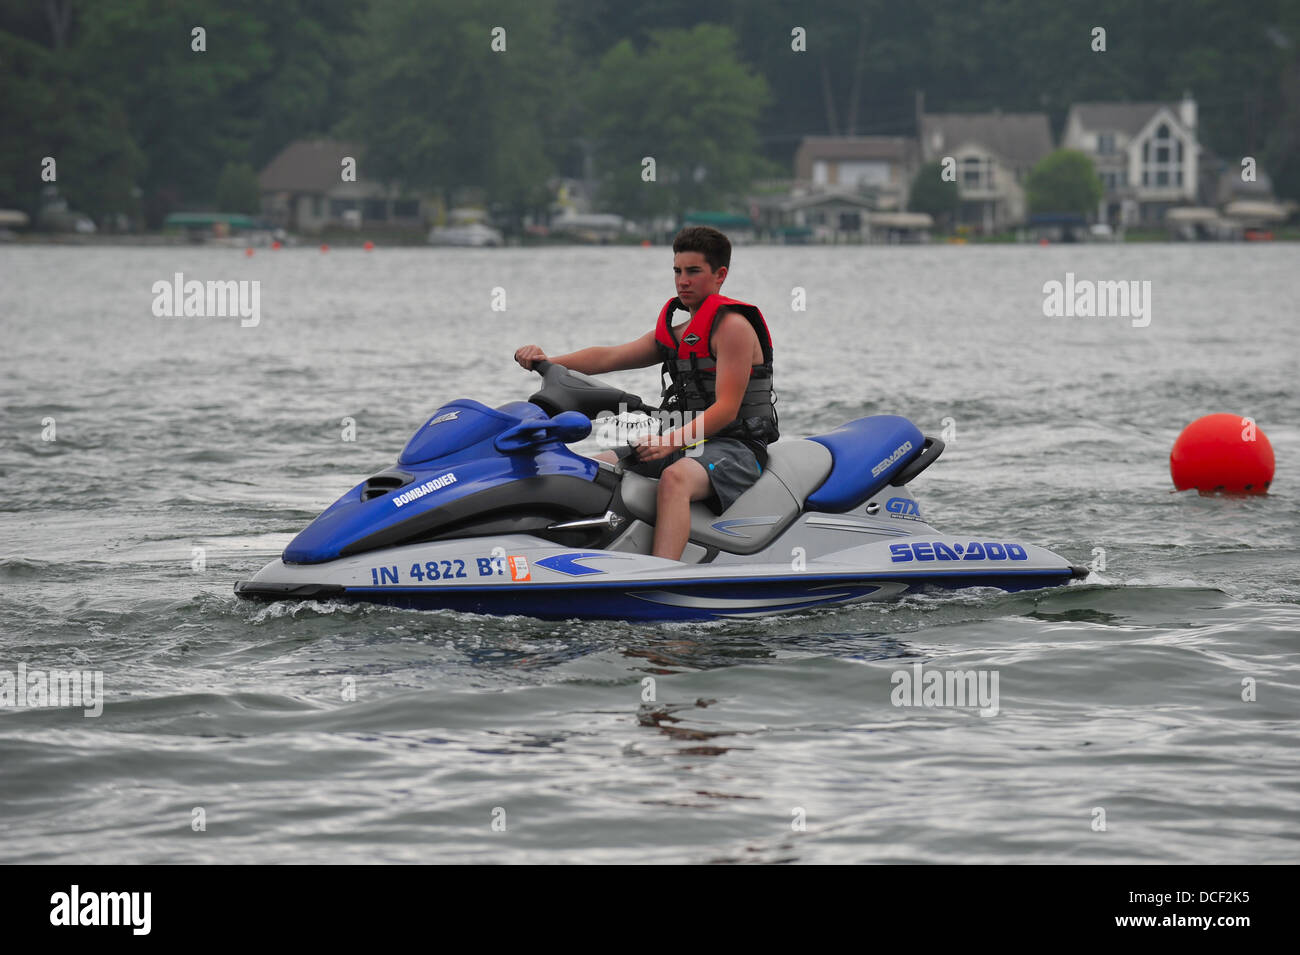 Male teen on a personal watercraft. - Stock Image